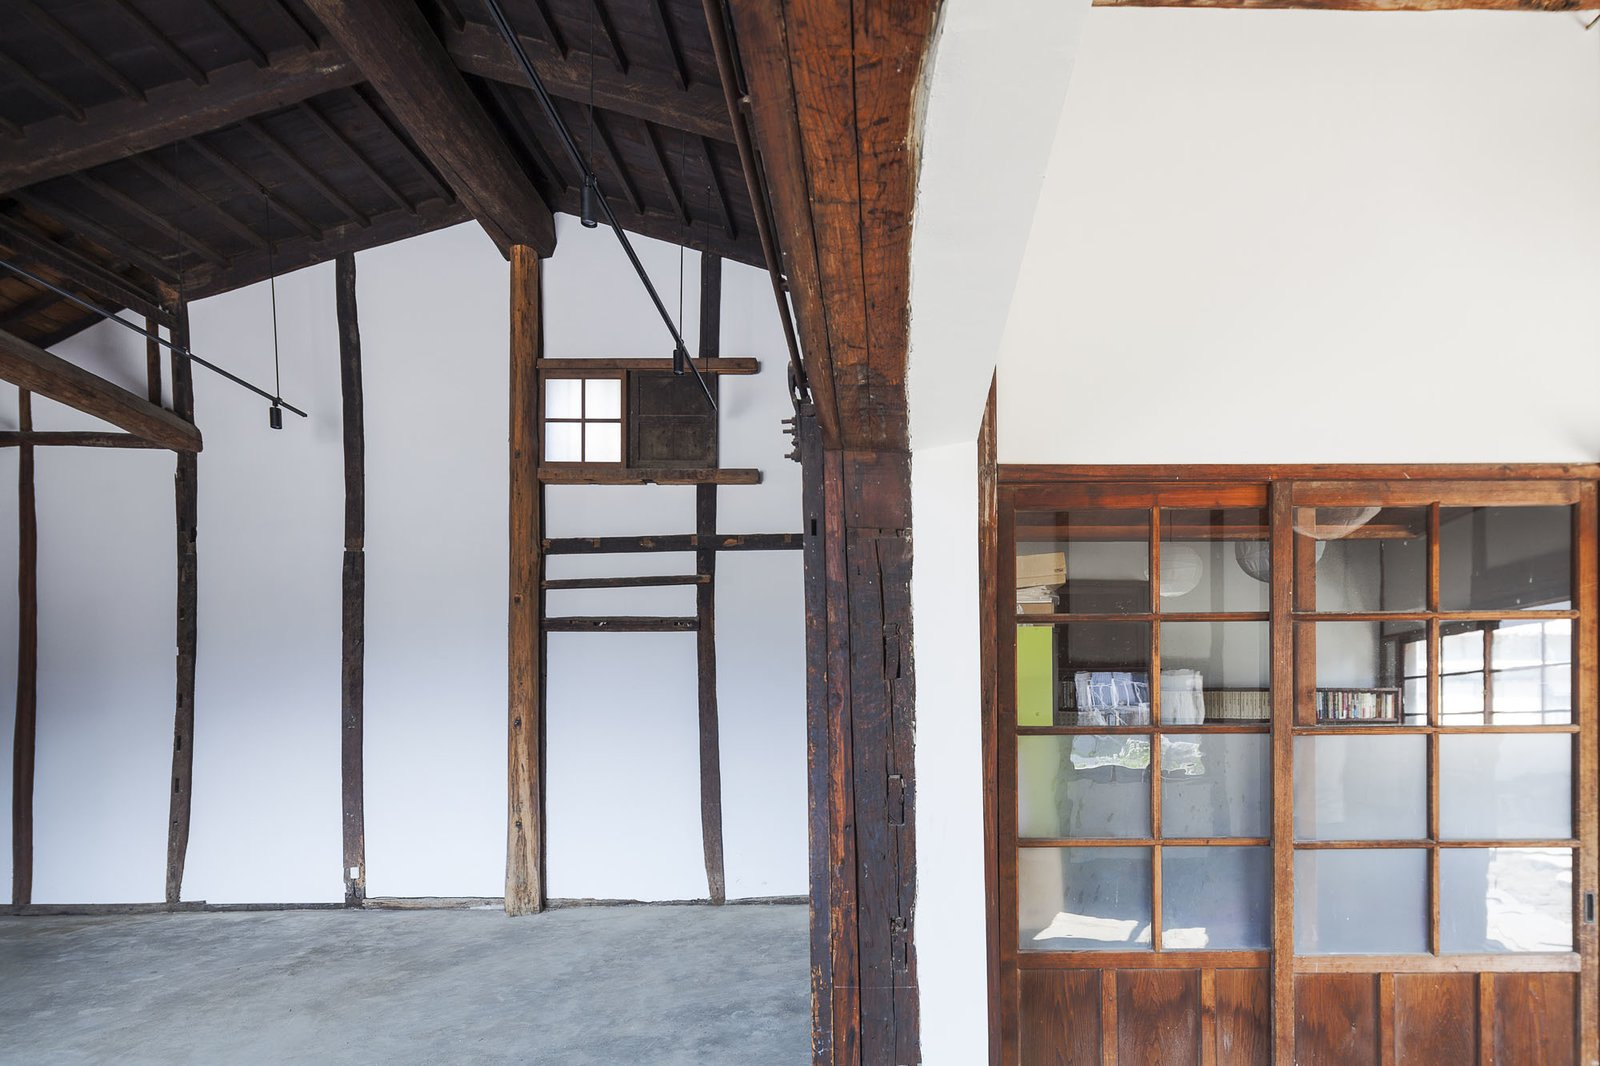 New wooden wainscoting, found in many traditional kura warehouses, was added to the interior.  Photo 4 of 8 in Saved From Demolition, a Japanese Sake Warehouse Sees a Second Life